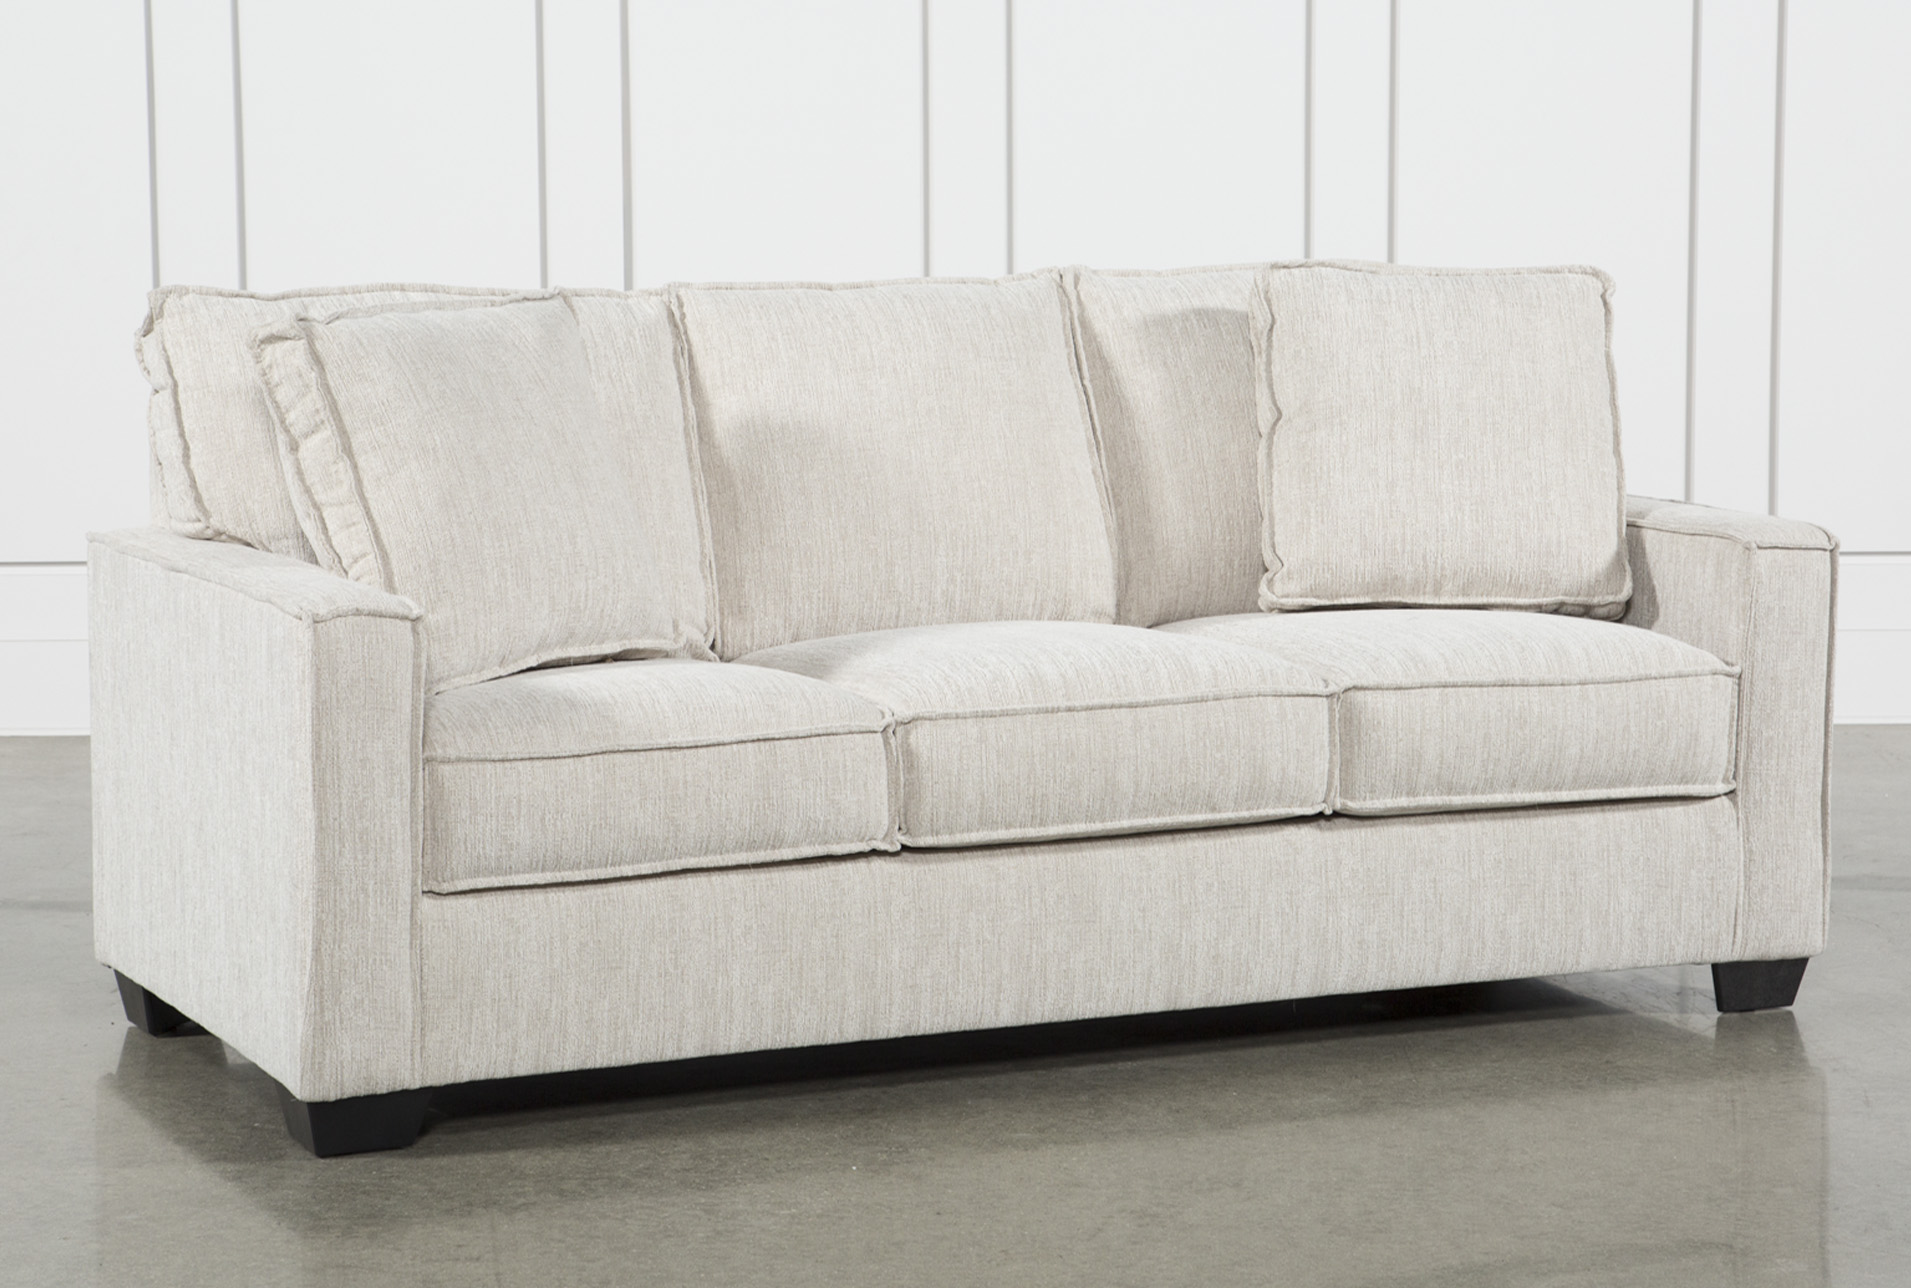 Escondido Queen Sofa Sleeper | Living Spaces